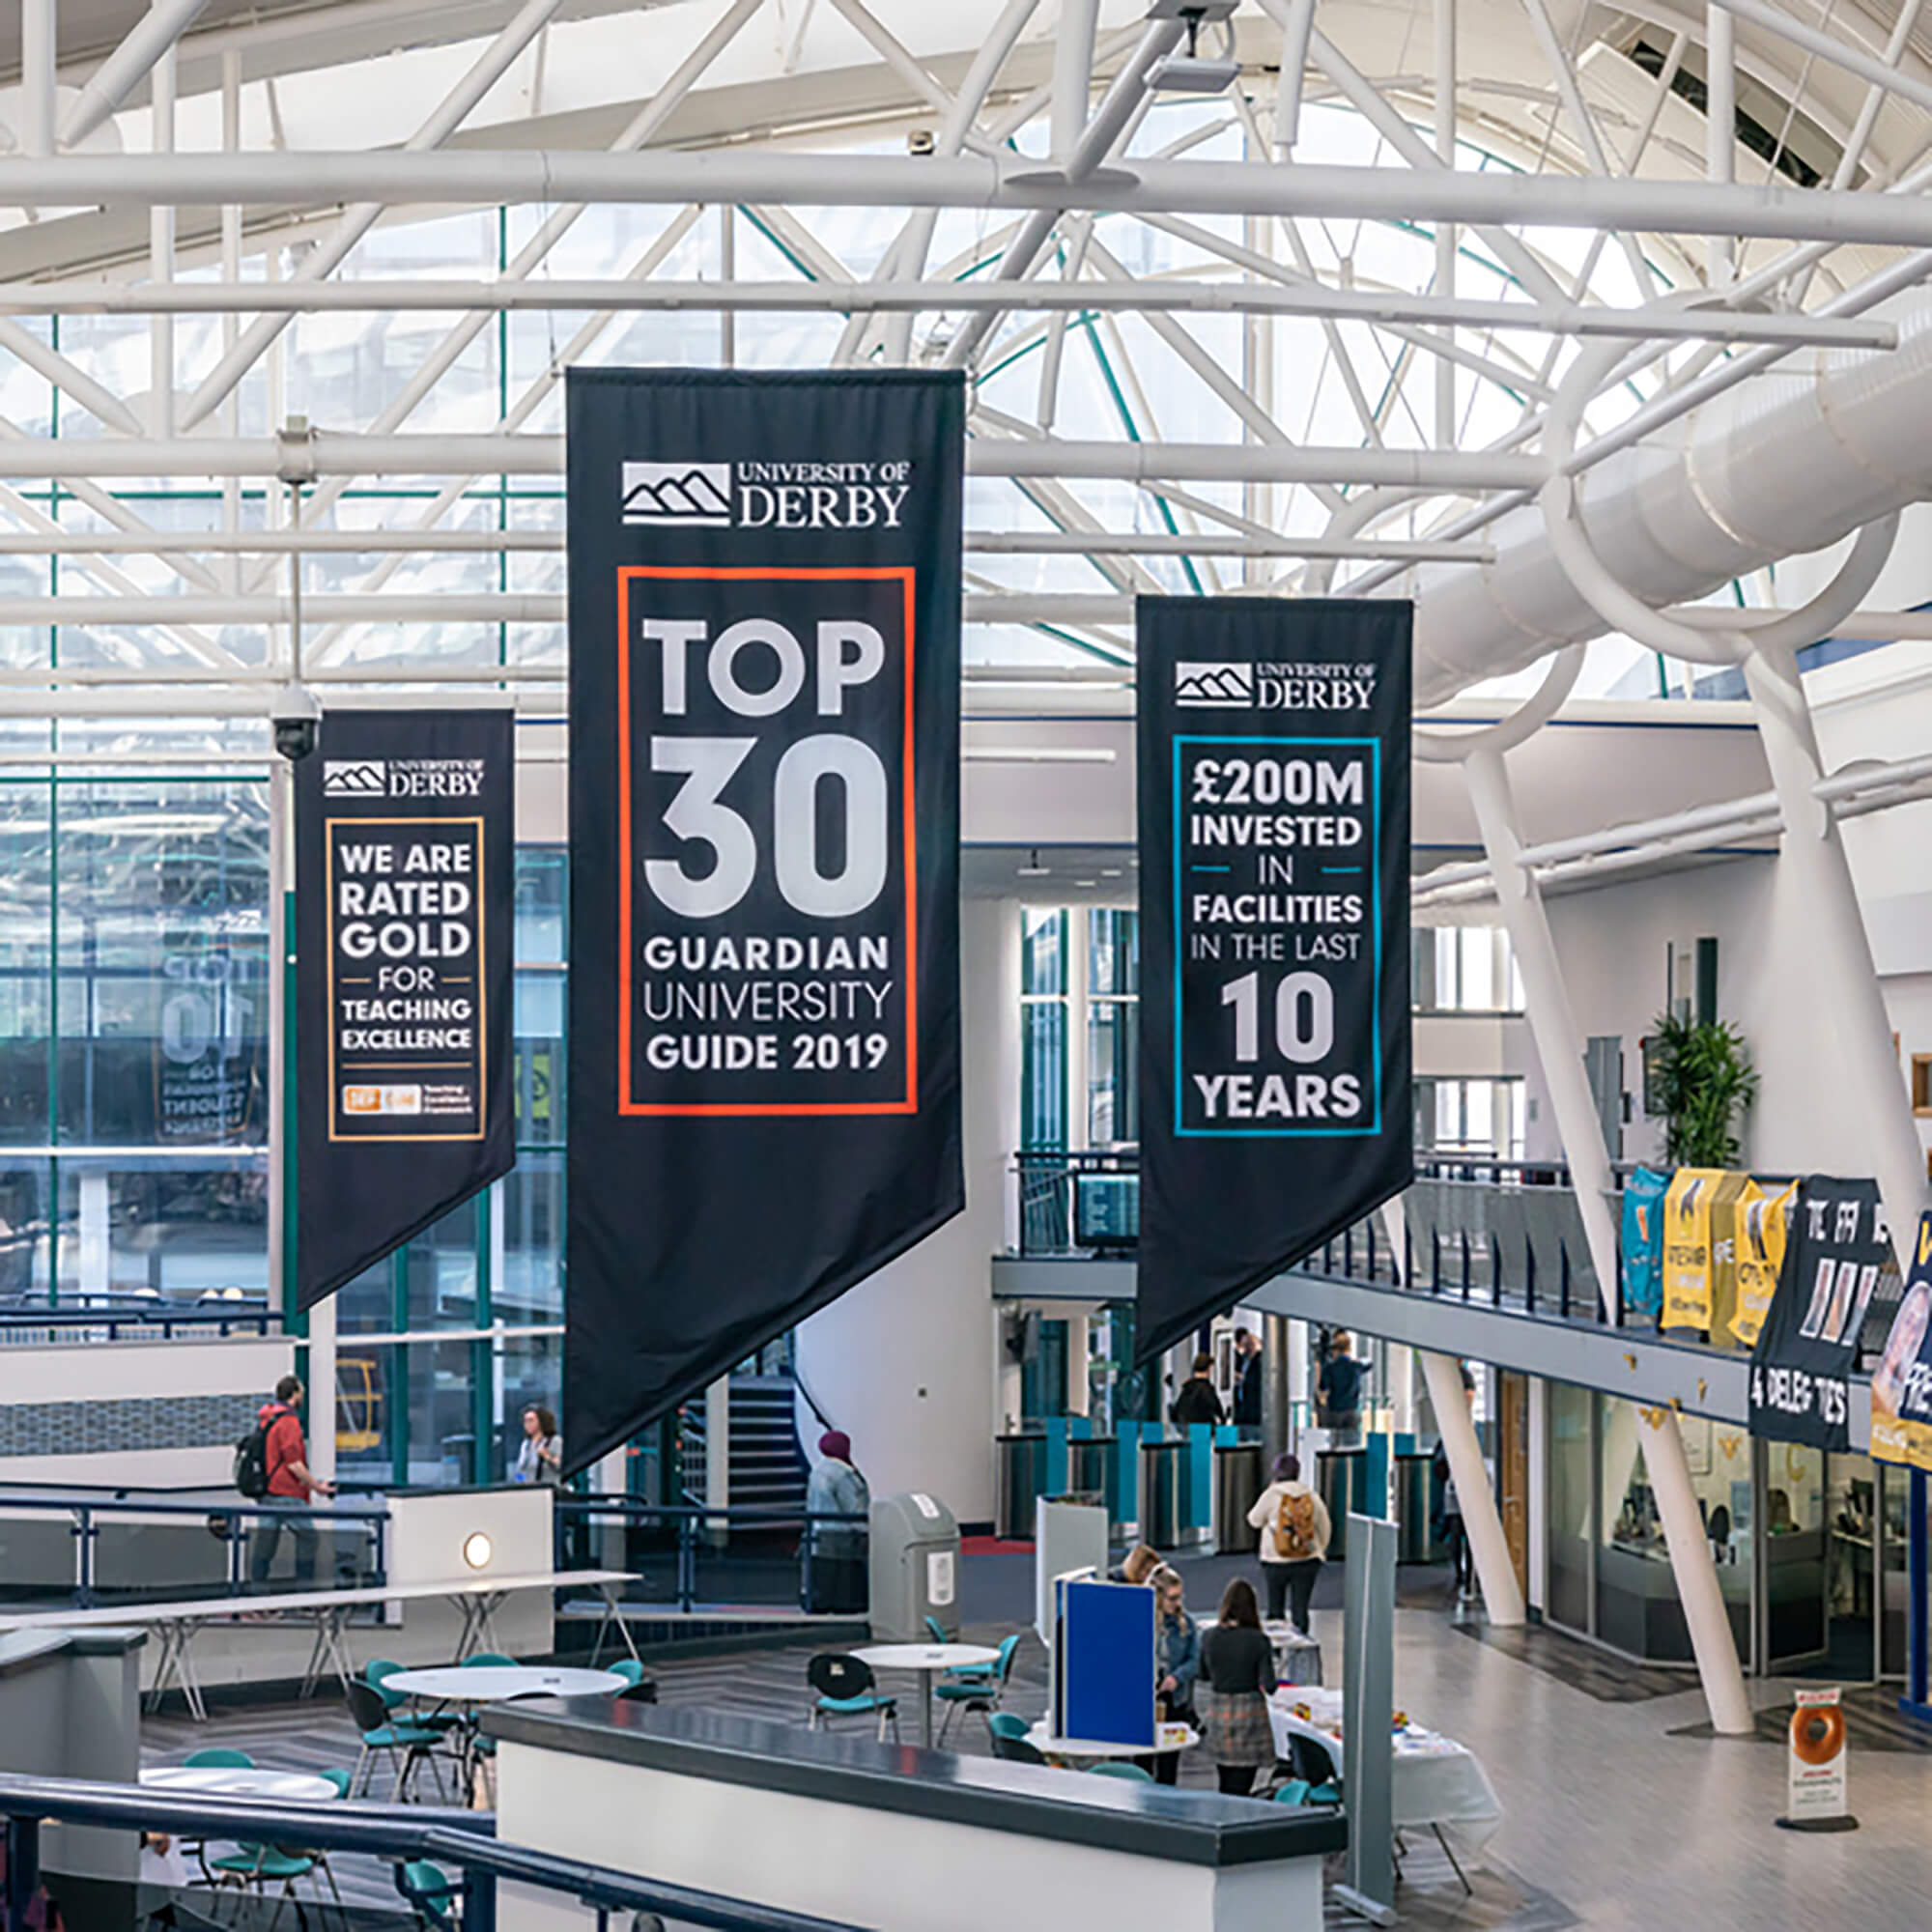 University statistic banners hanging from ceiling in the Atrium at Kedleston Road